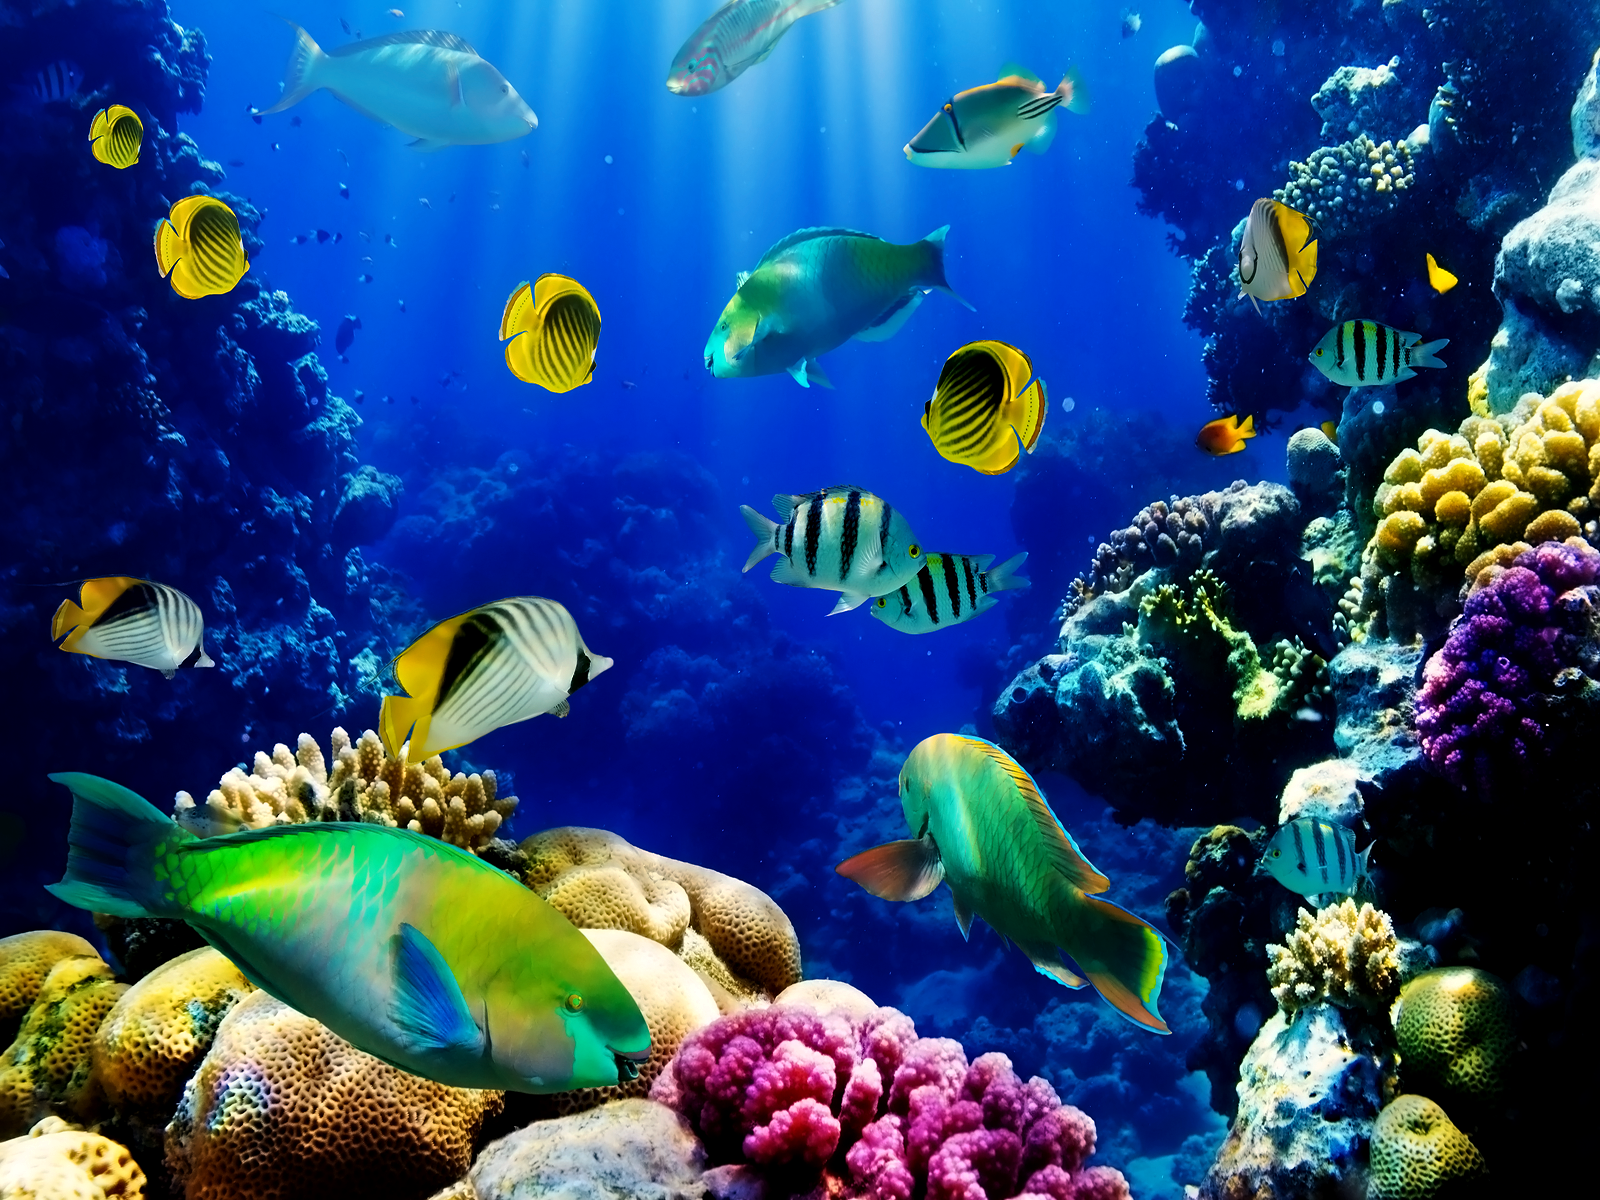 desktop aquarium 3d screensaver free download